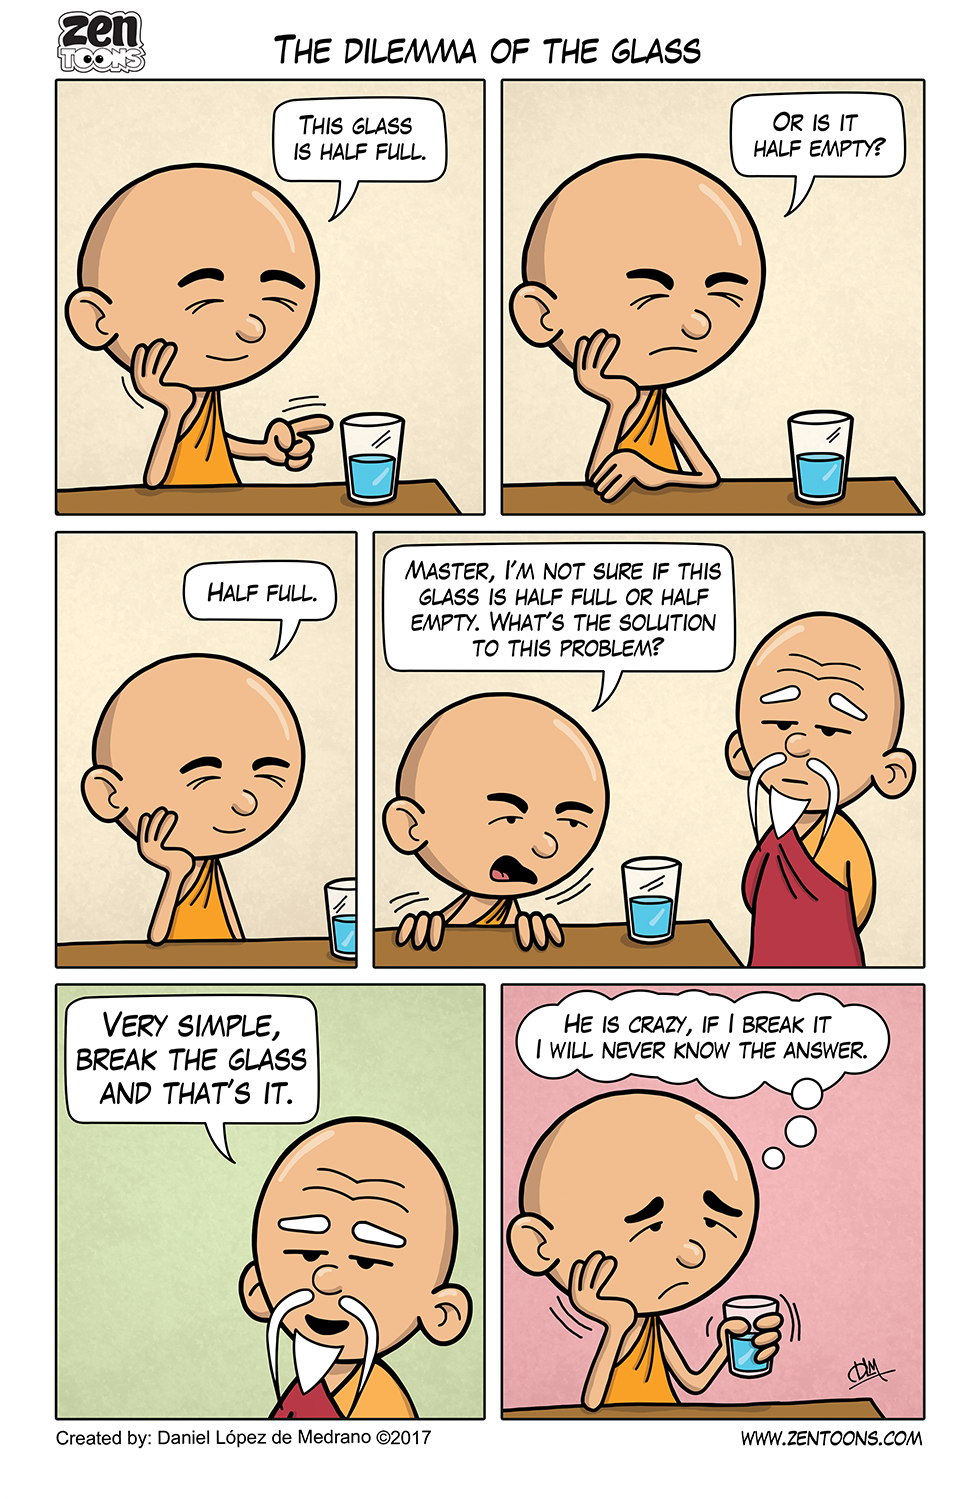 010. ZEN TOONS: The Dilemma of the Glass